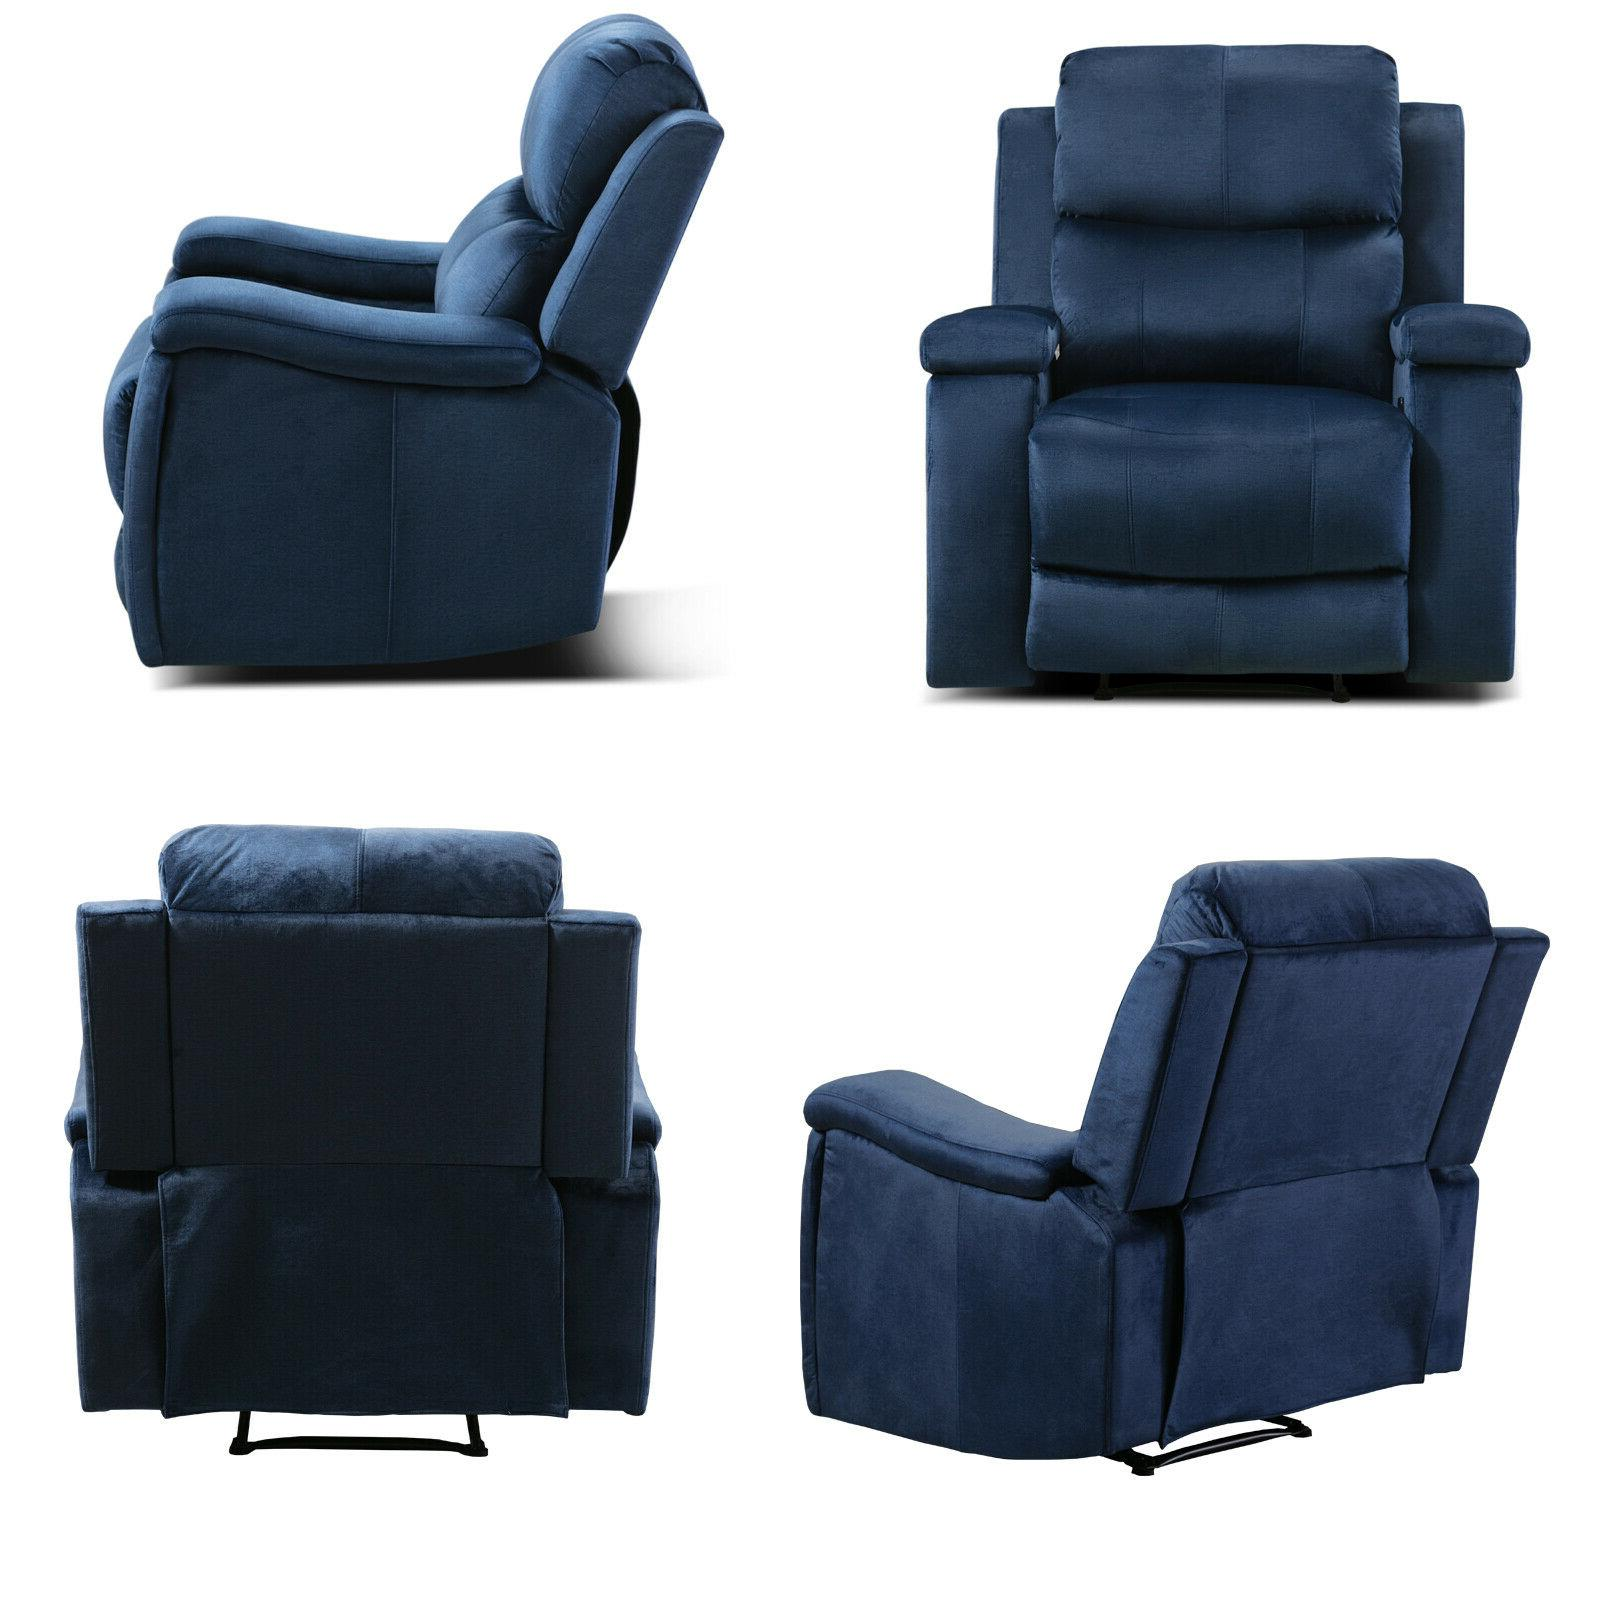 Oversized Recliner with Pullable Cup Theater